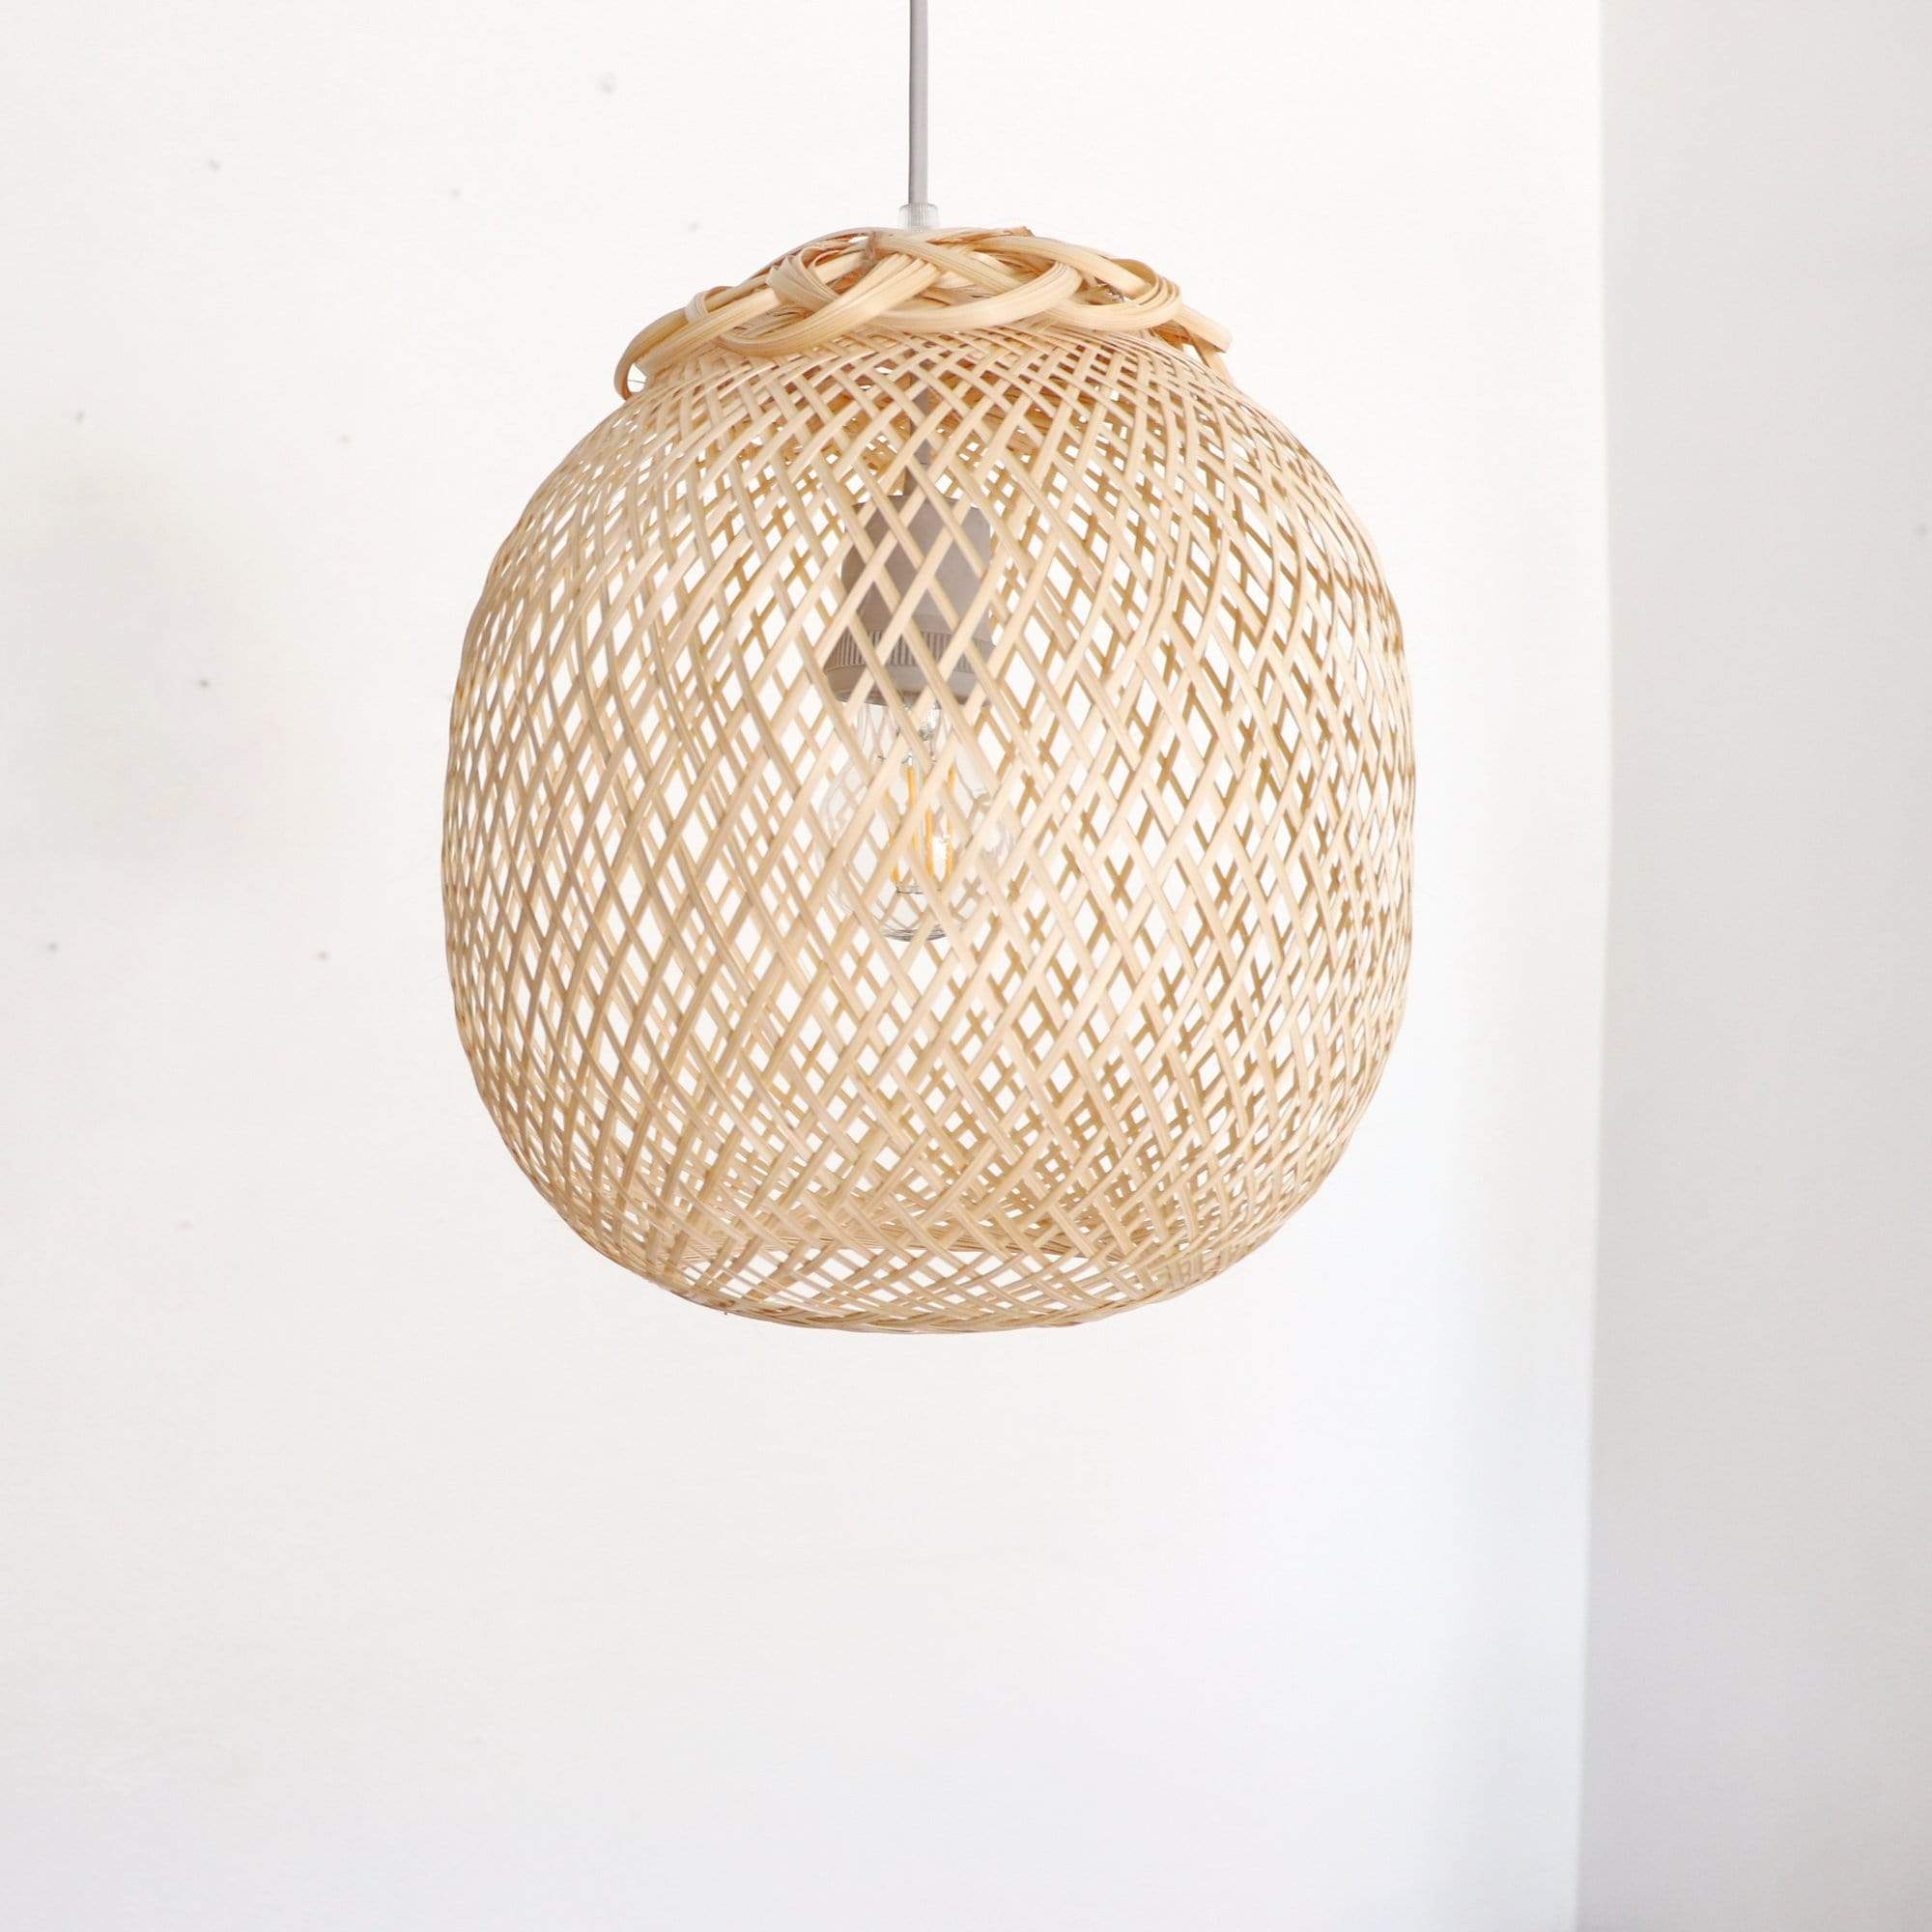 THAIHOMESHOP Bamboo Pendant Light DARA - BAMBOO PENDANT LIGHT